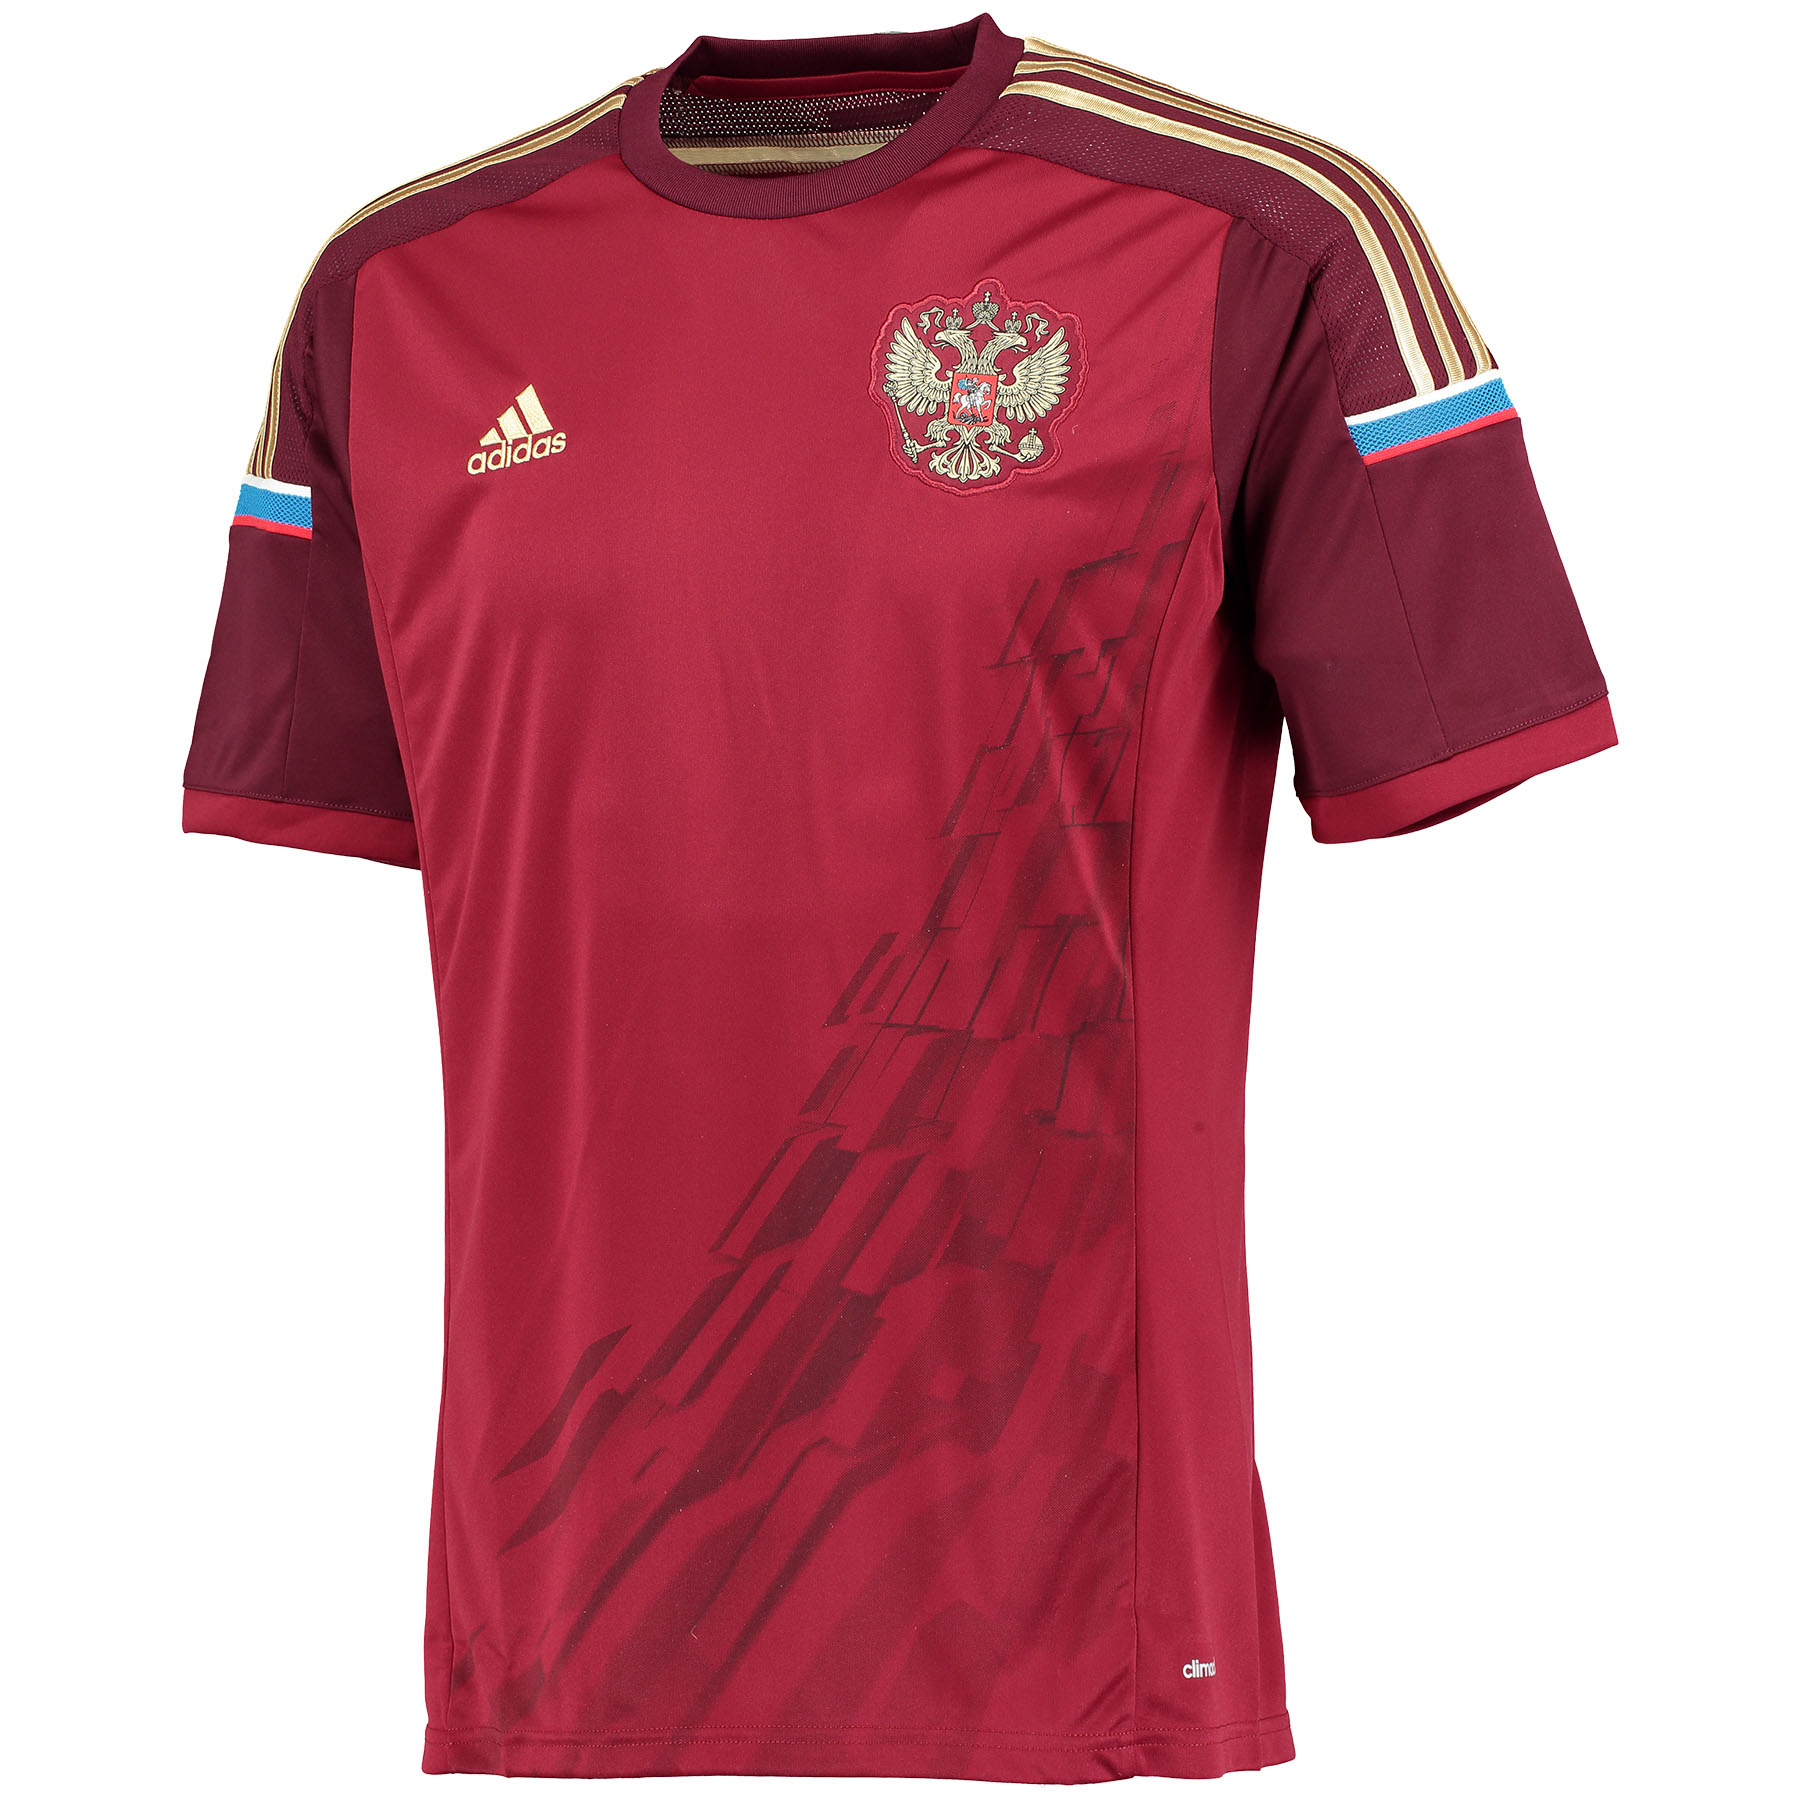 Russia Home Shirt 2014